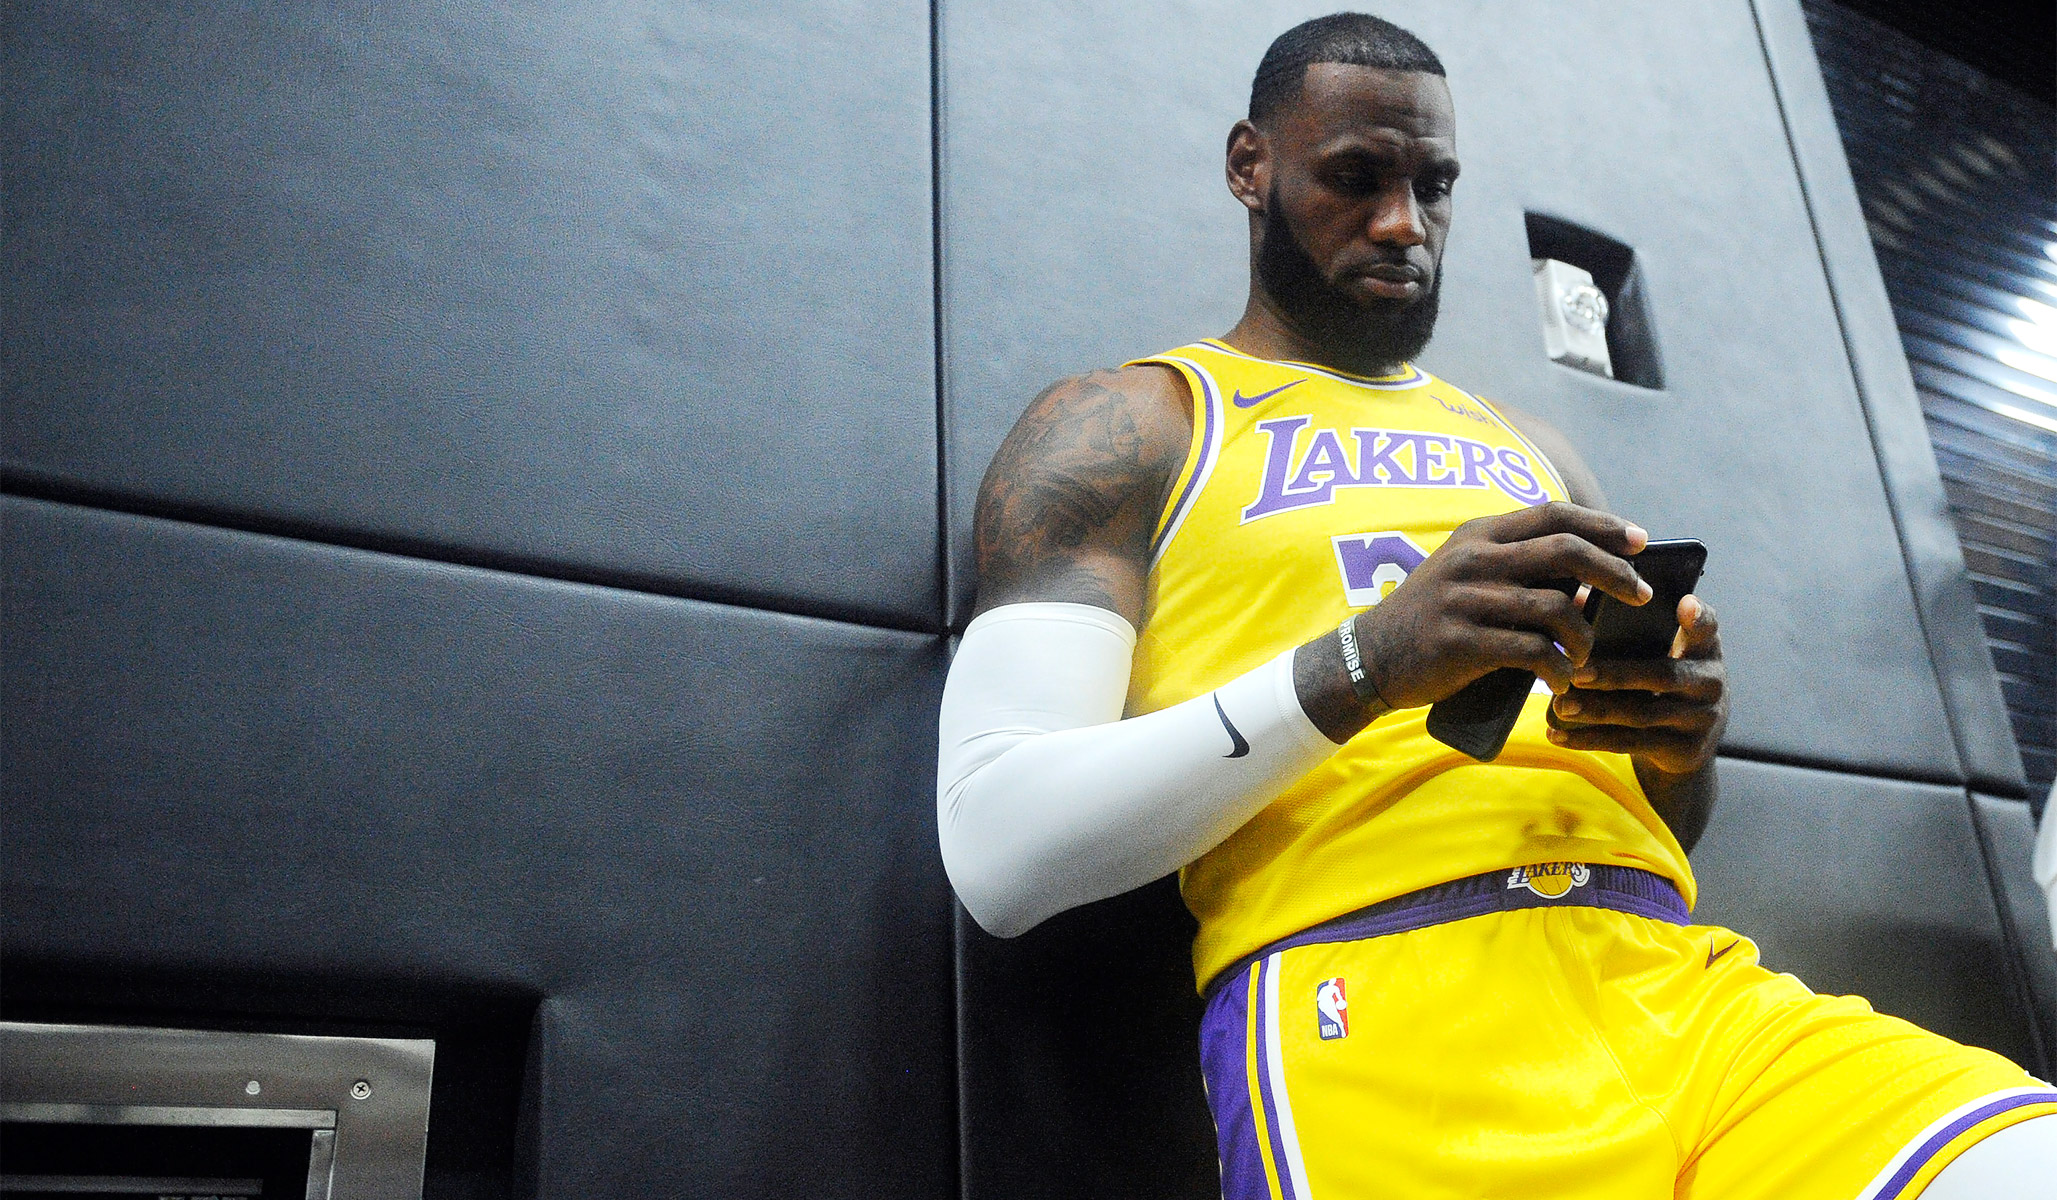 Lebron James: Rockets GM Was 'Misinformed' When He Expressed Support for Hong Kong Protesters